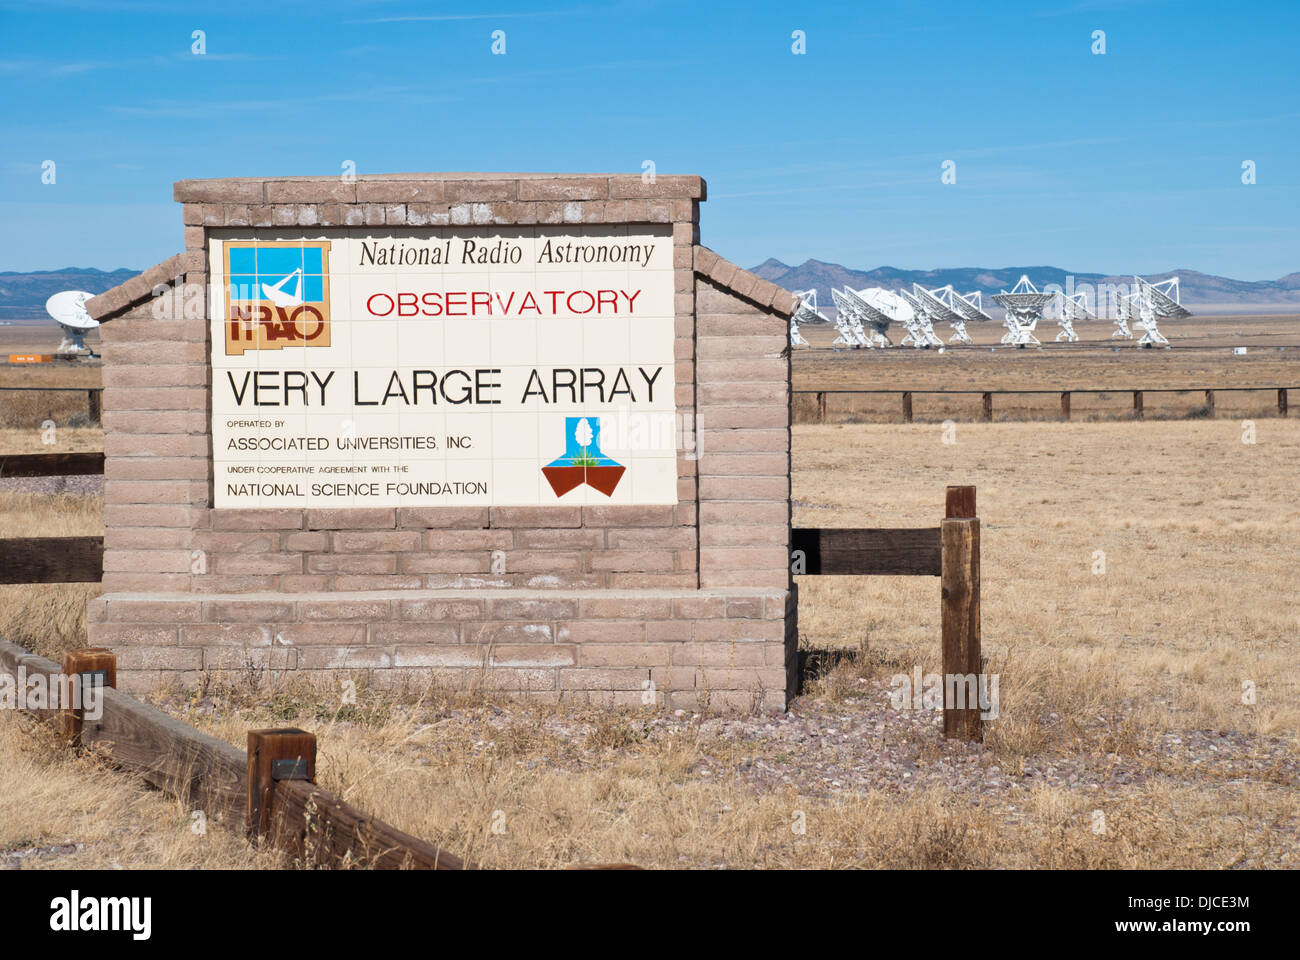 The Very Large Array Observatory is composed of 27 huge telescopes and situated on the Plains of San Agustin. Stock Photo